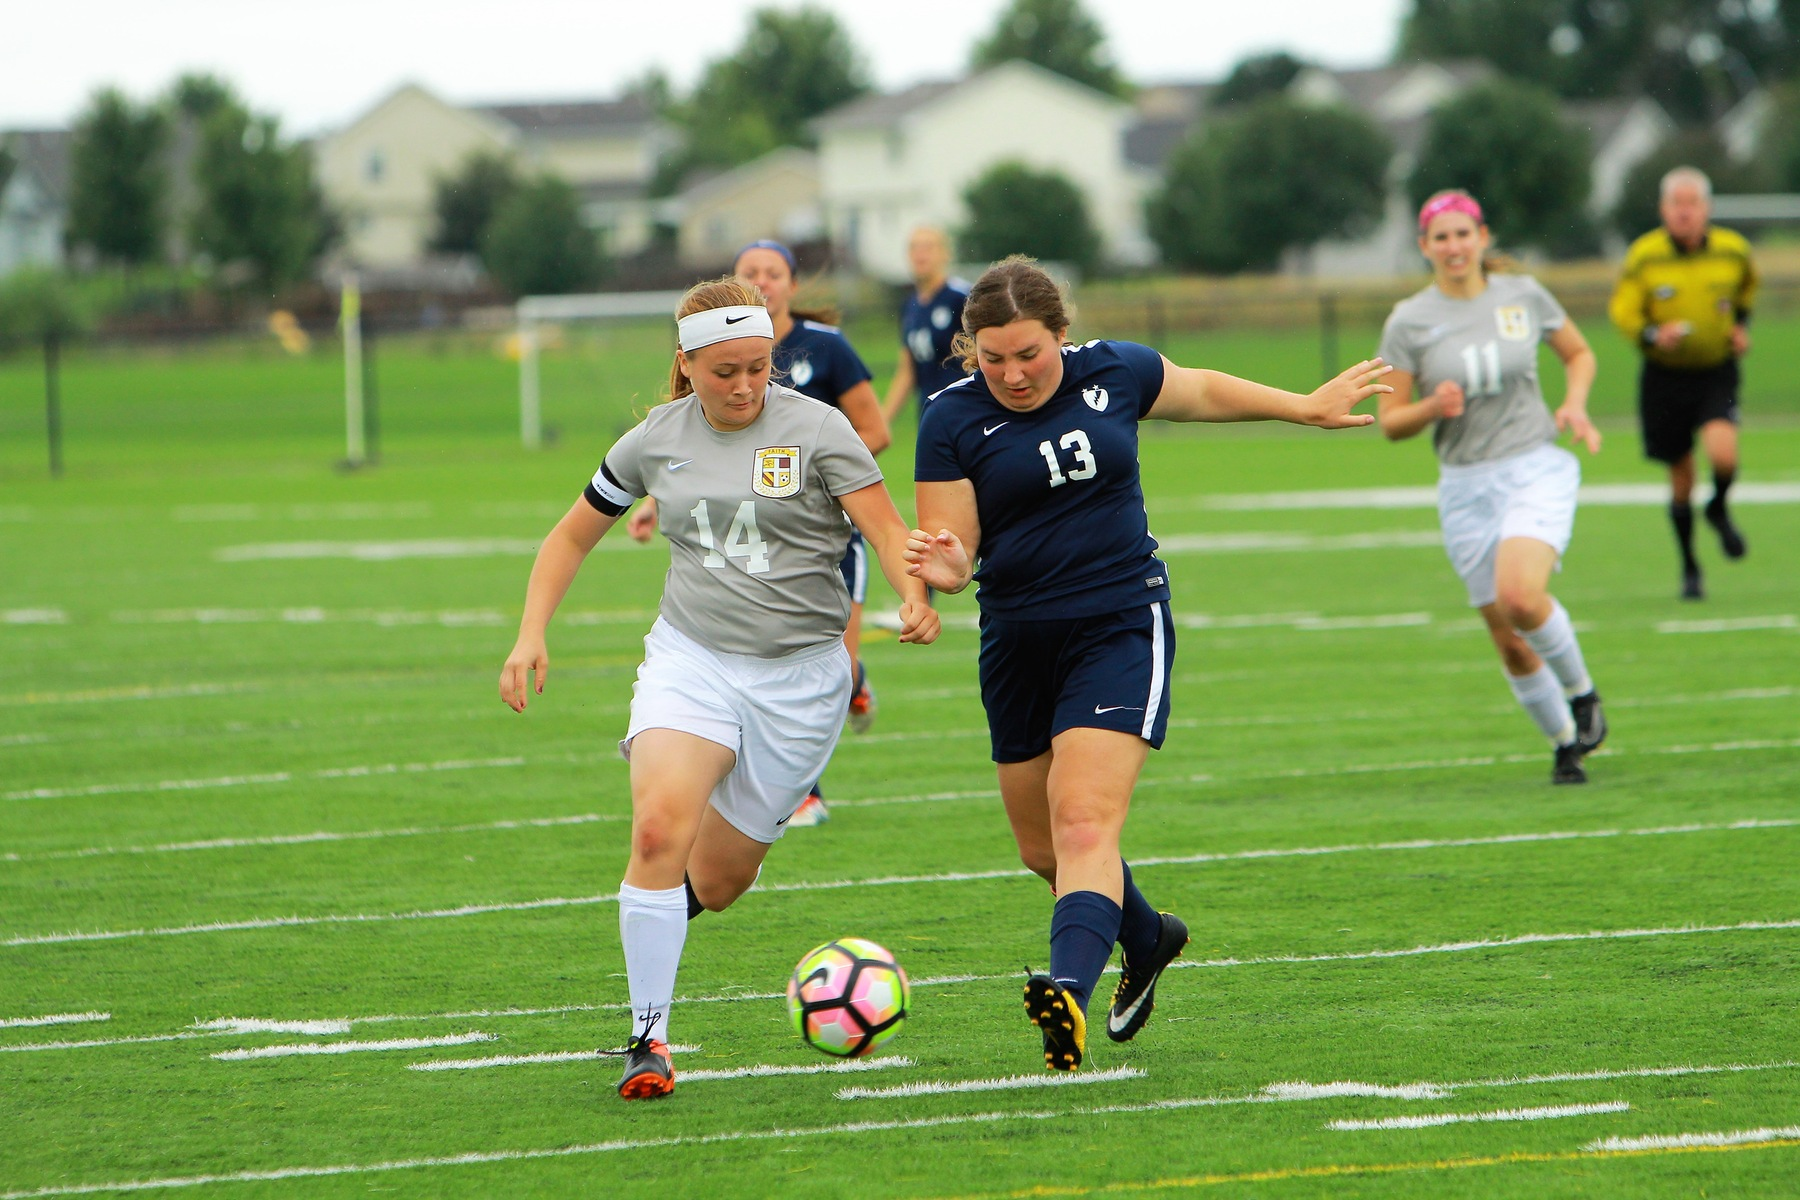 Women's Soccer Rolls to 7-0 Win Over Manhattan Christian